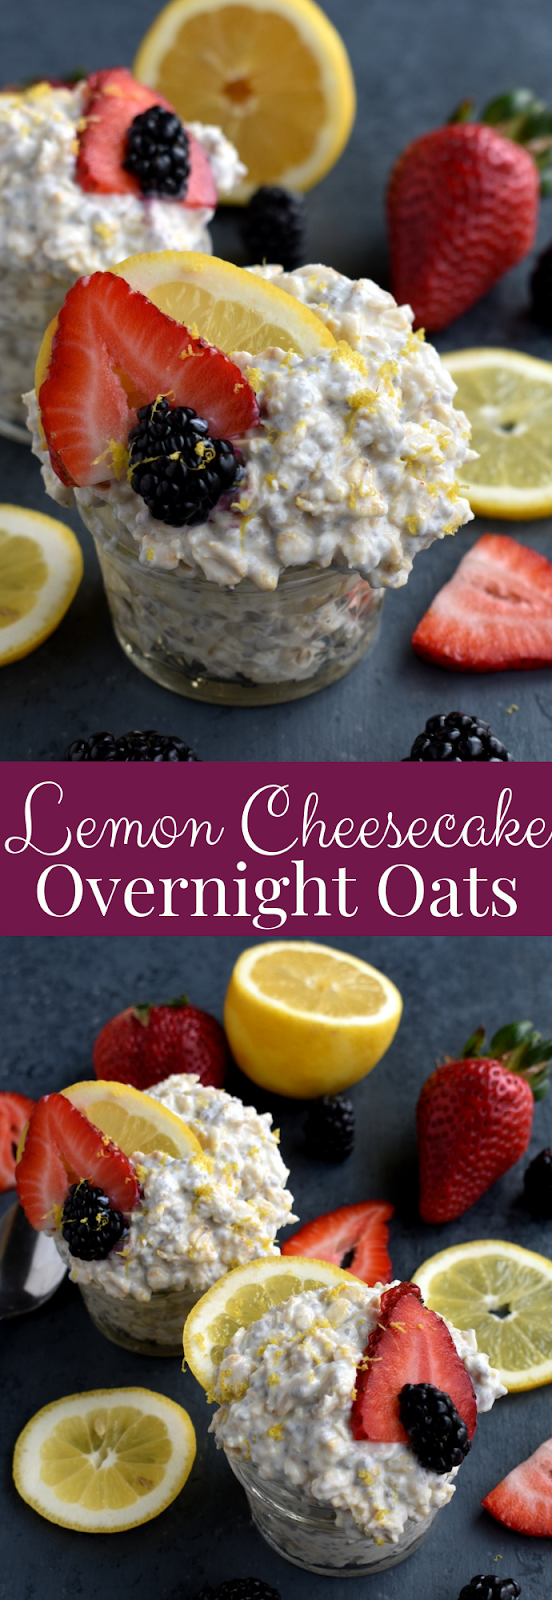 Lemon Cheesecake Overnight Oats recipe